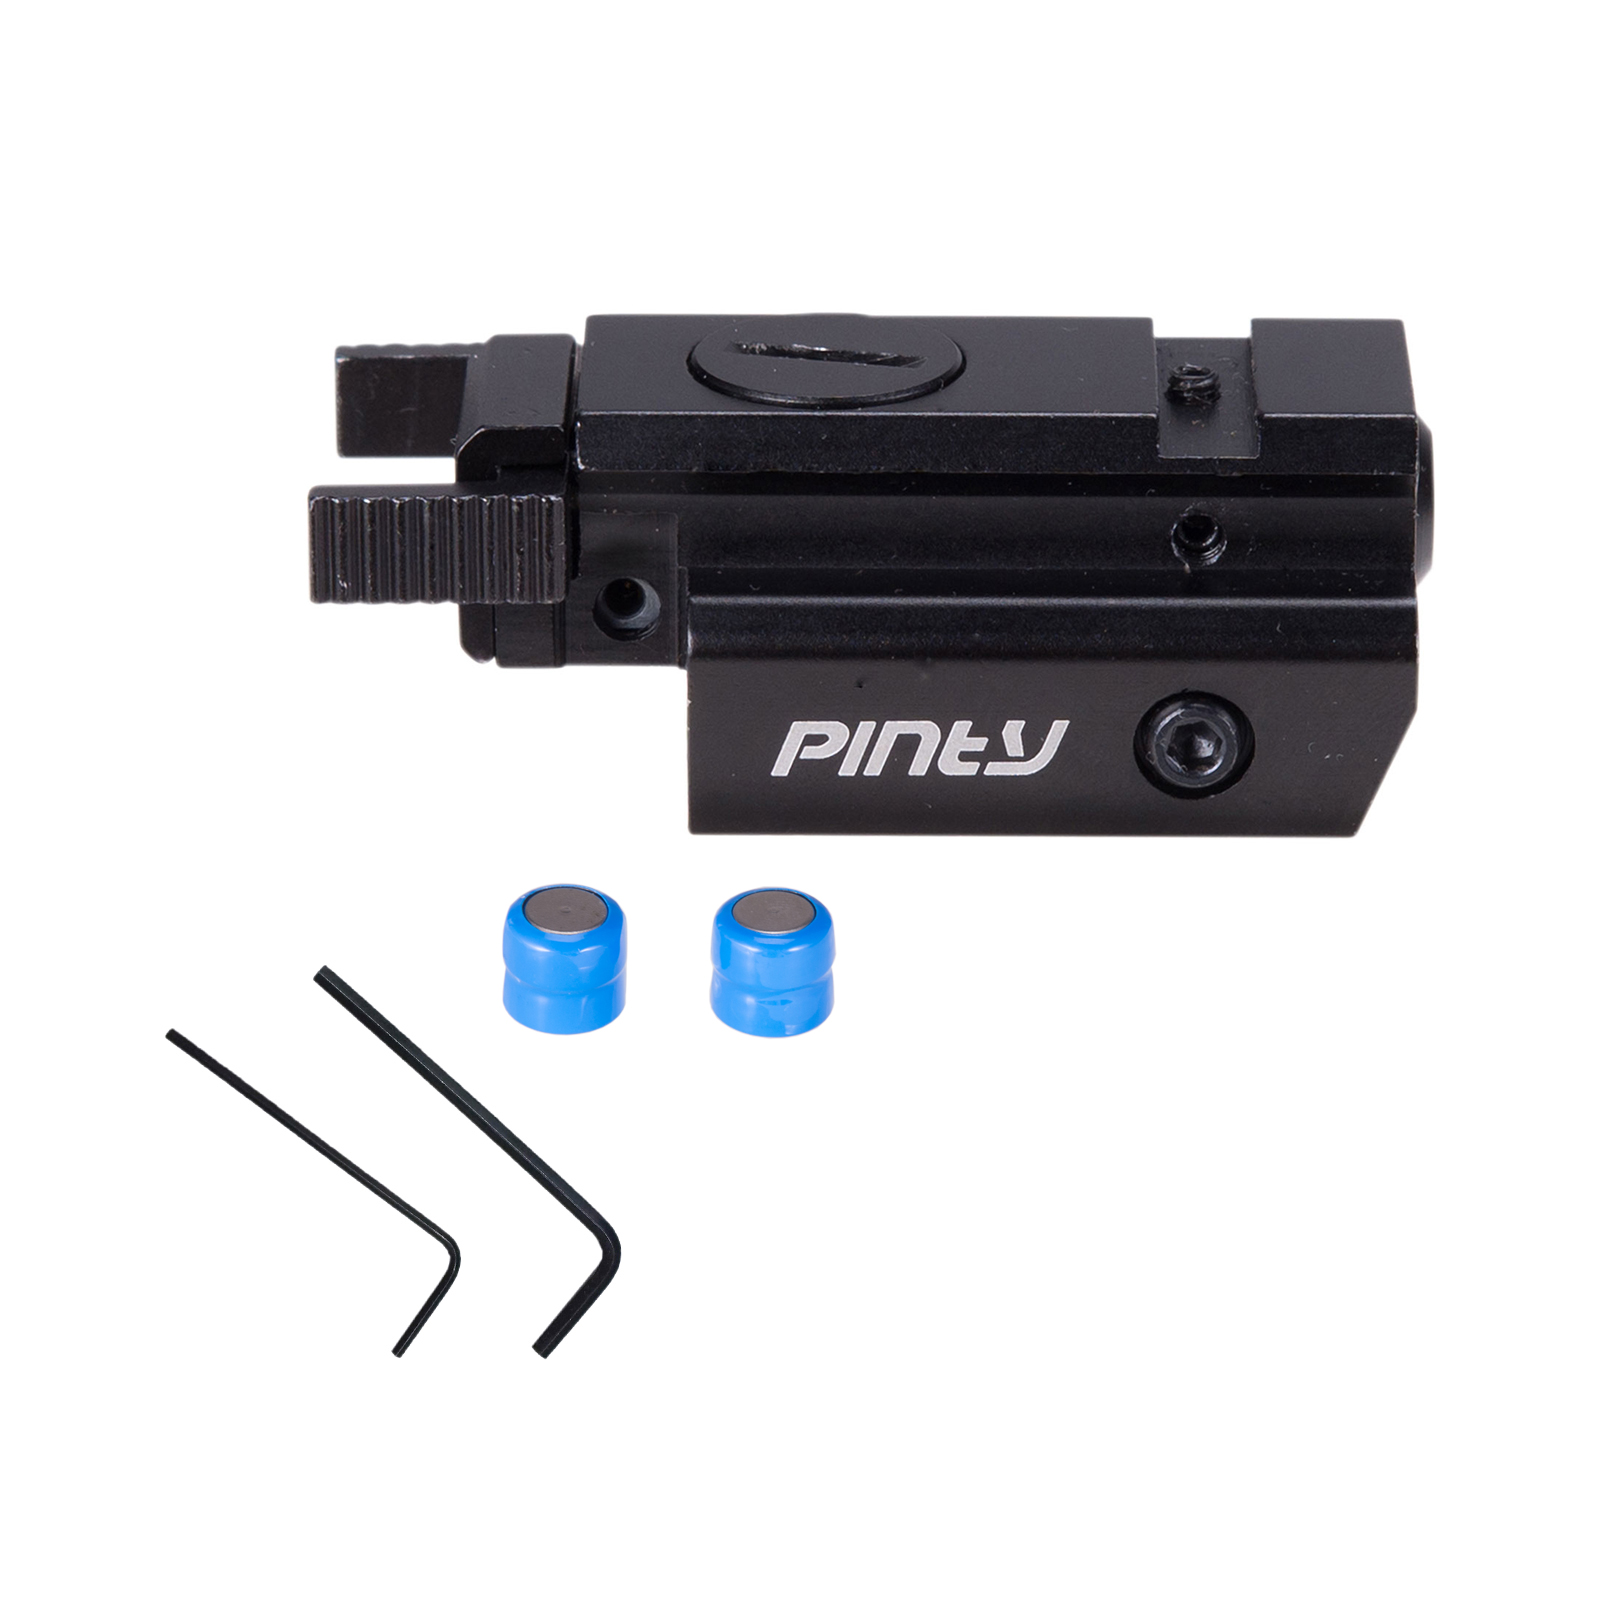 Premium Mini Red Dot Laser Sight w 20mm Picatinny Mount For Pistol Rifle Gun by